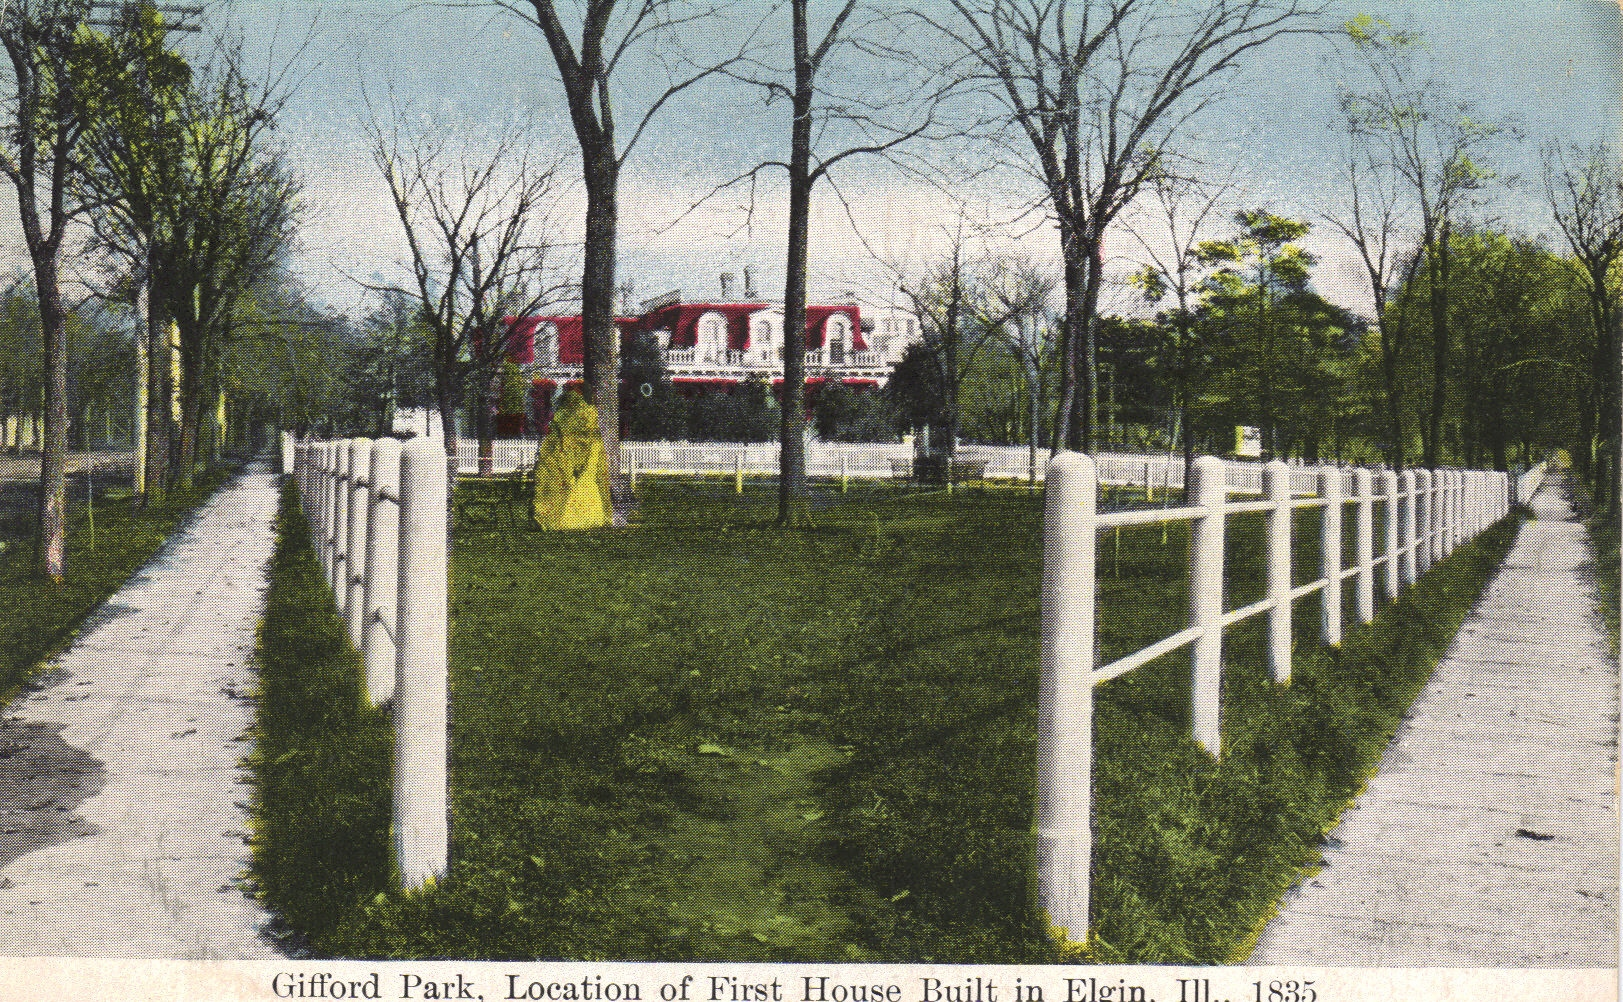 Gifford-Park.-Location-of-Elgin's-first-home-1835.jpg